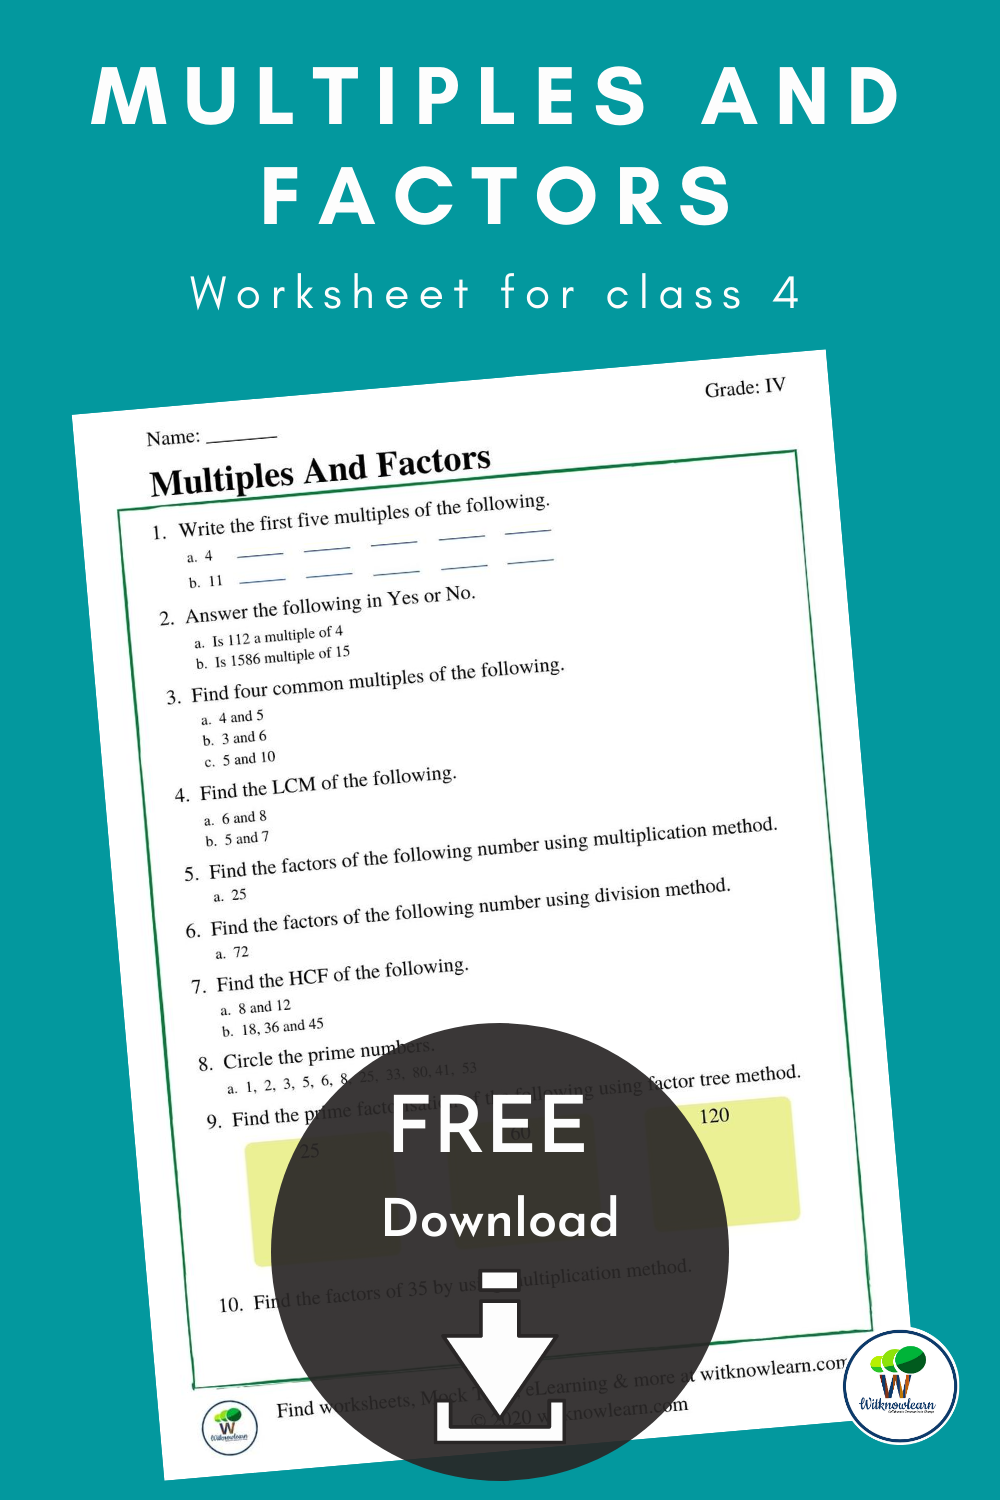 Multiples And Factors Worksheets Free Math Worksheets Class 4 Maths [ 1500 x 1000 Pixel ]